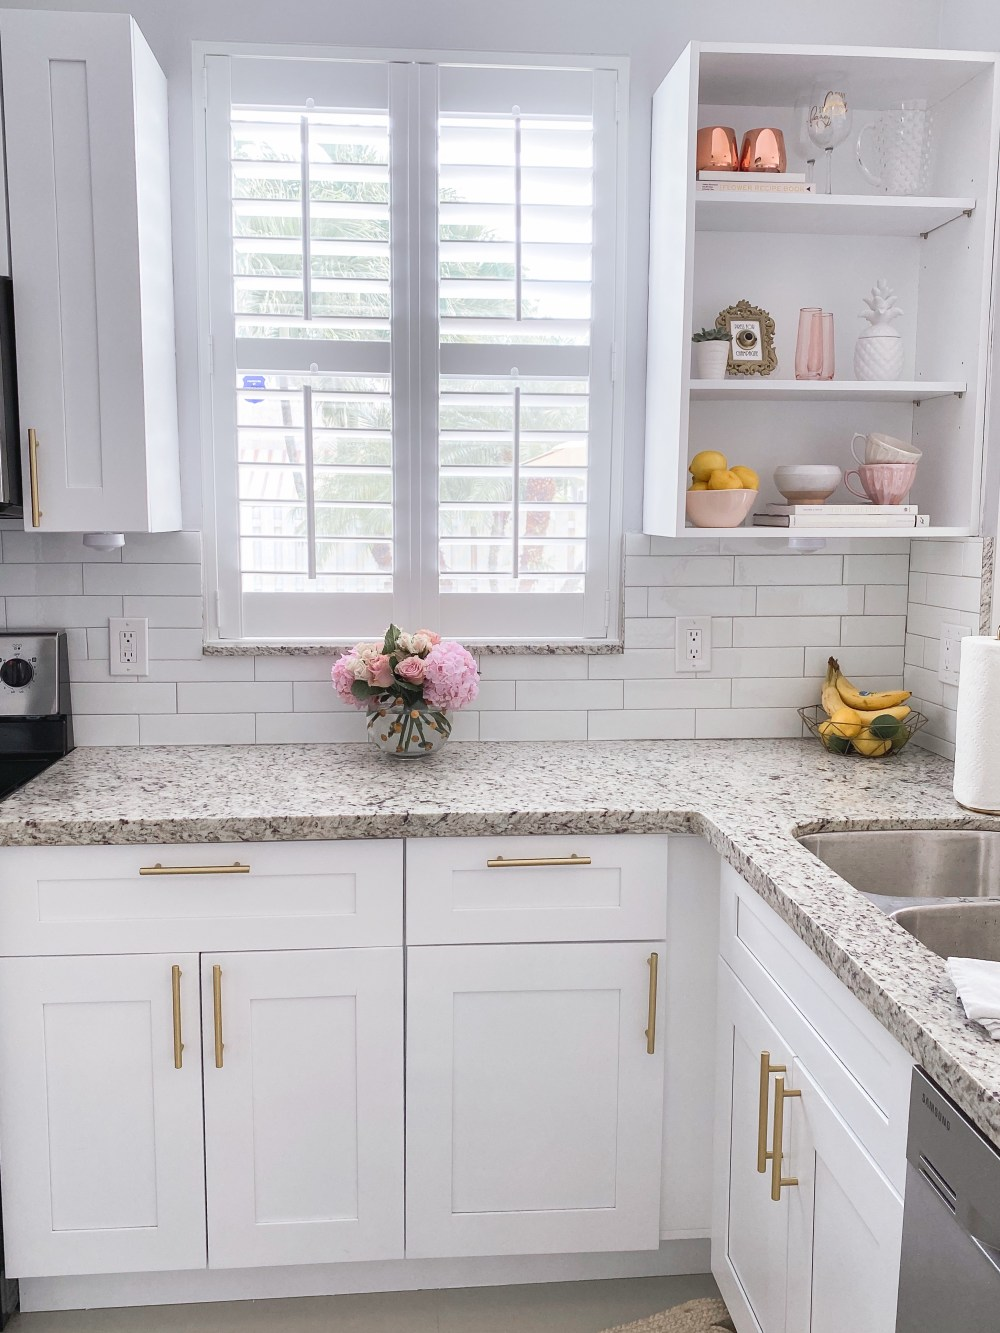 Gold Hardware White Cabinetry DIY Kitchen Remodel